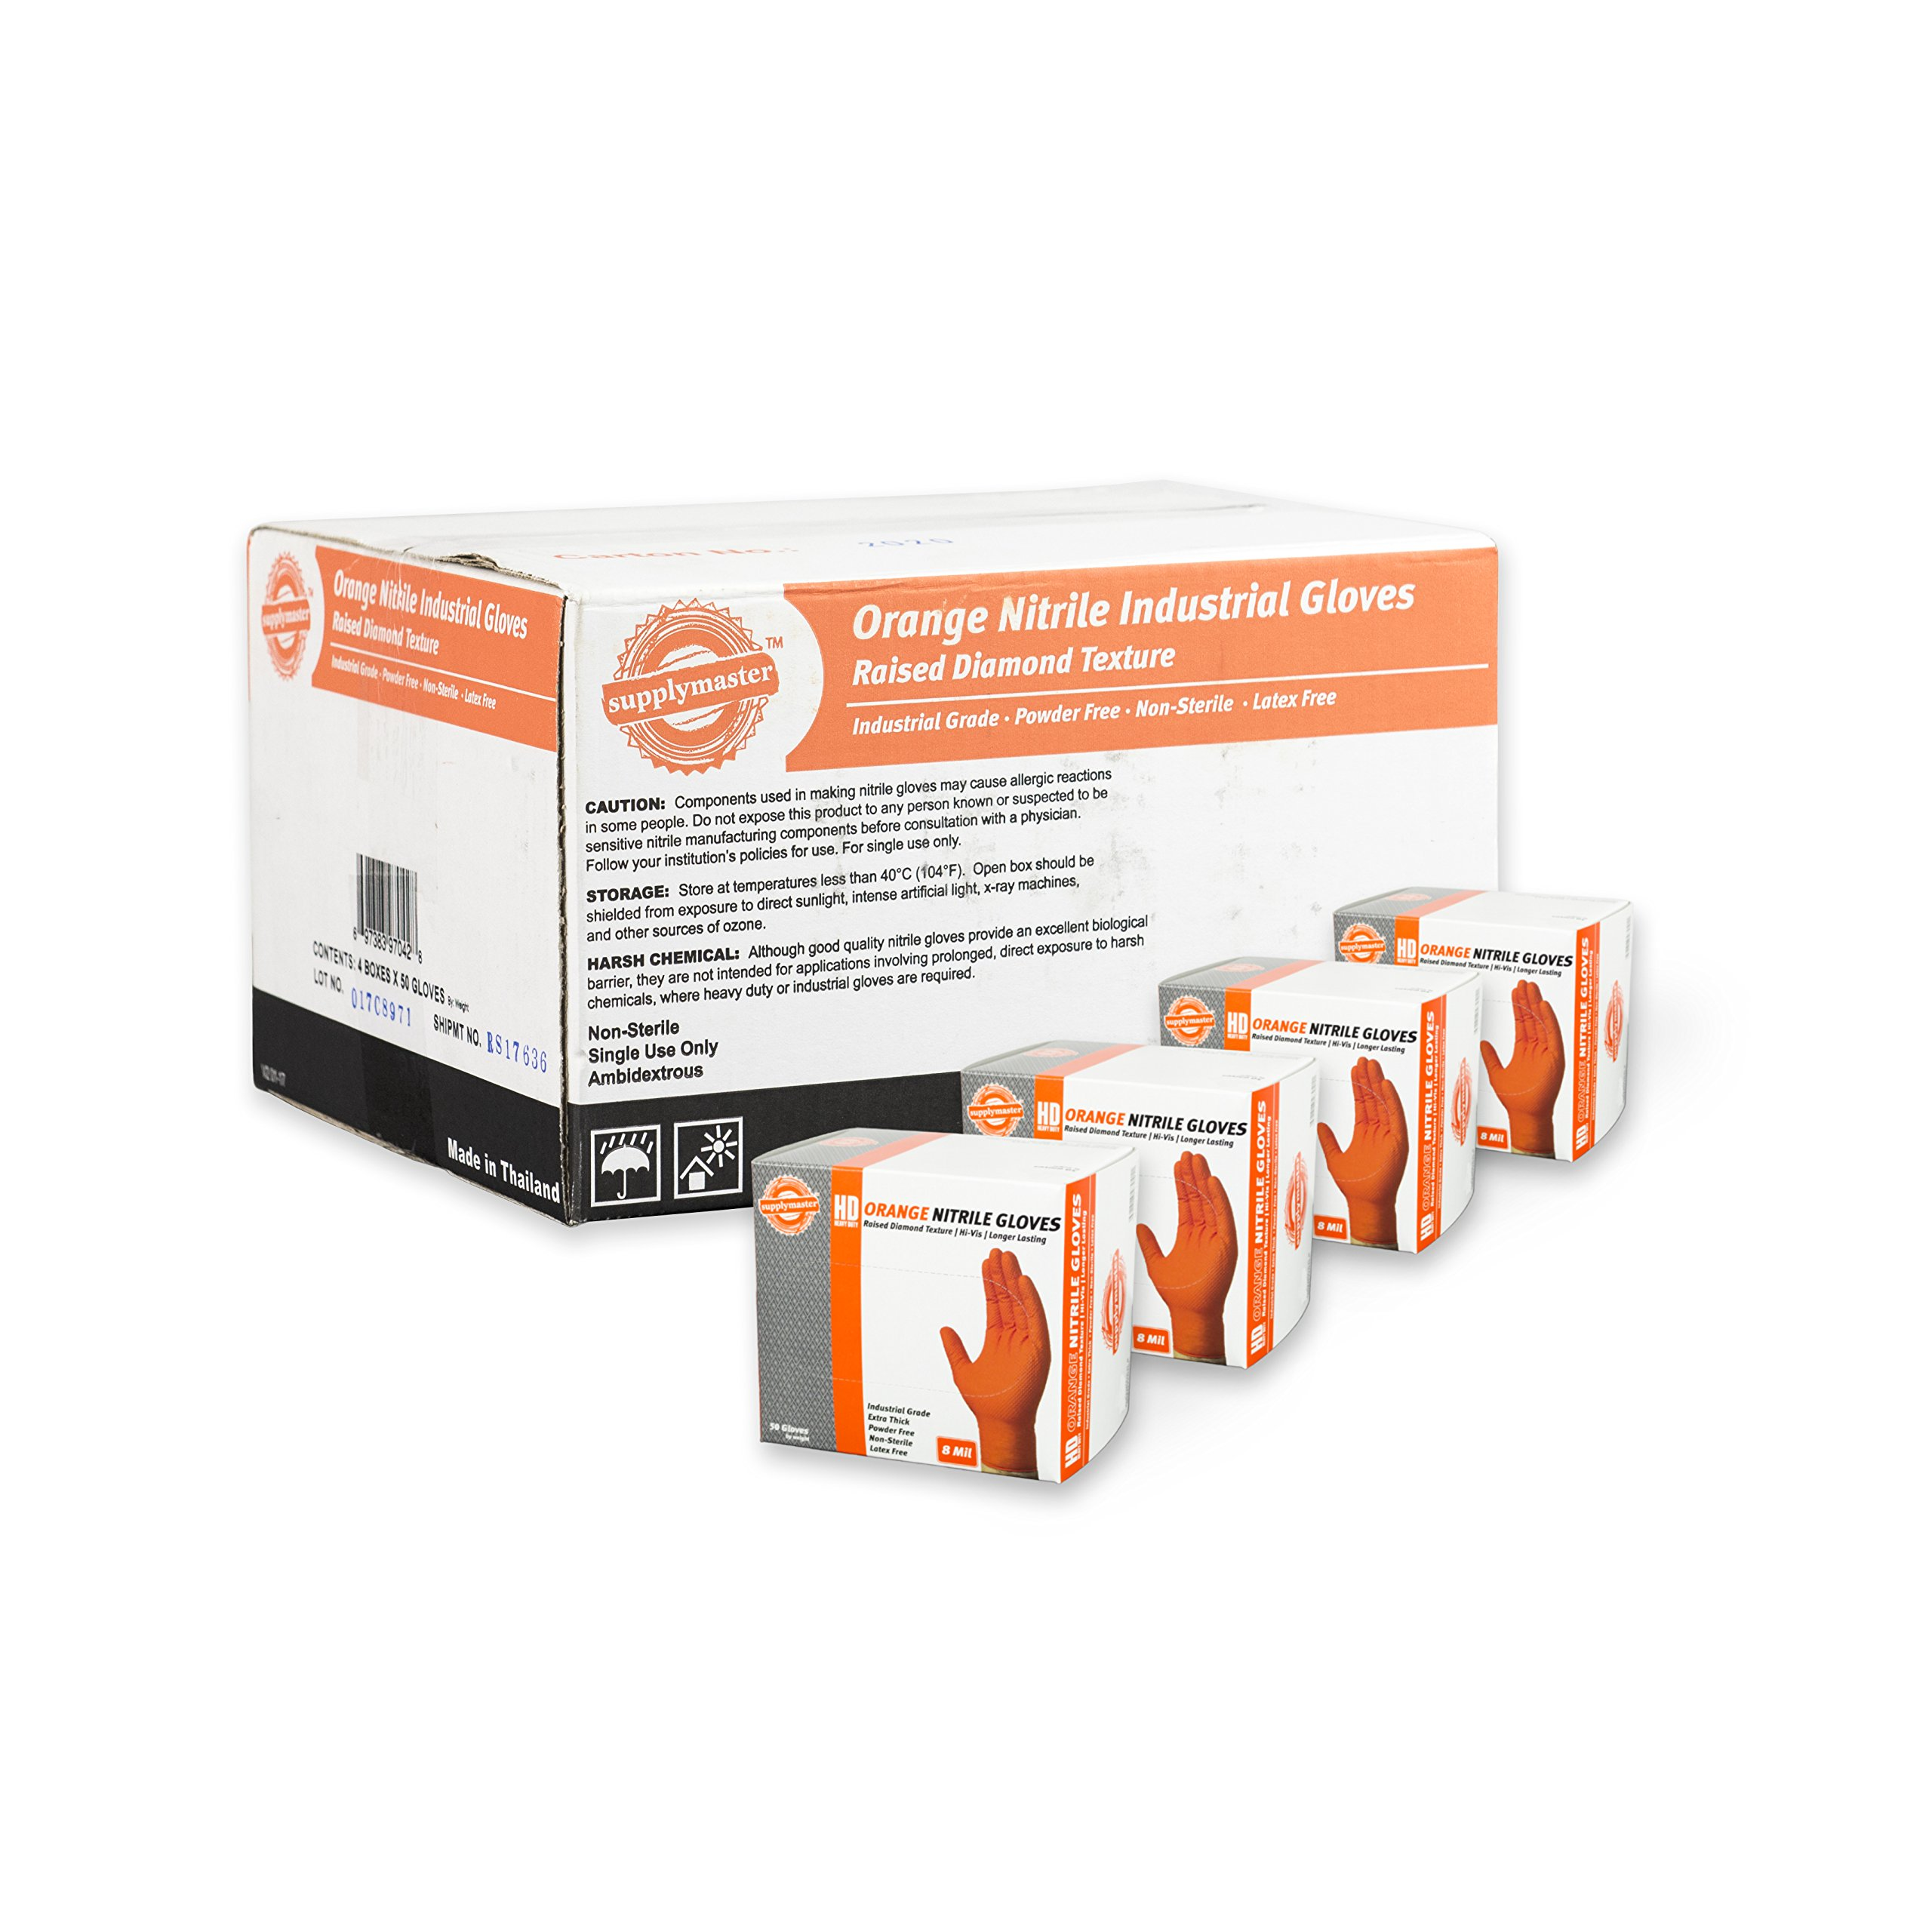 SupplyMaster Orange Nitrile Industrial Disposable Gloves - 8 Mil, Raised Diamond Texture, Powder Free, Non-Sterile, Latex Free, Ambidextrous, Large, Case of 200 by SupplyMaster